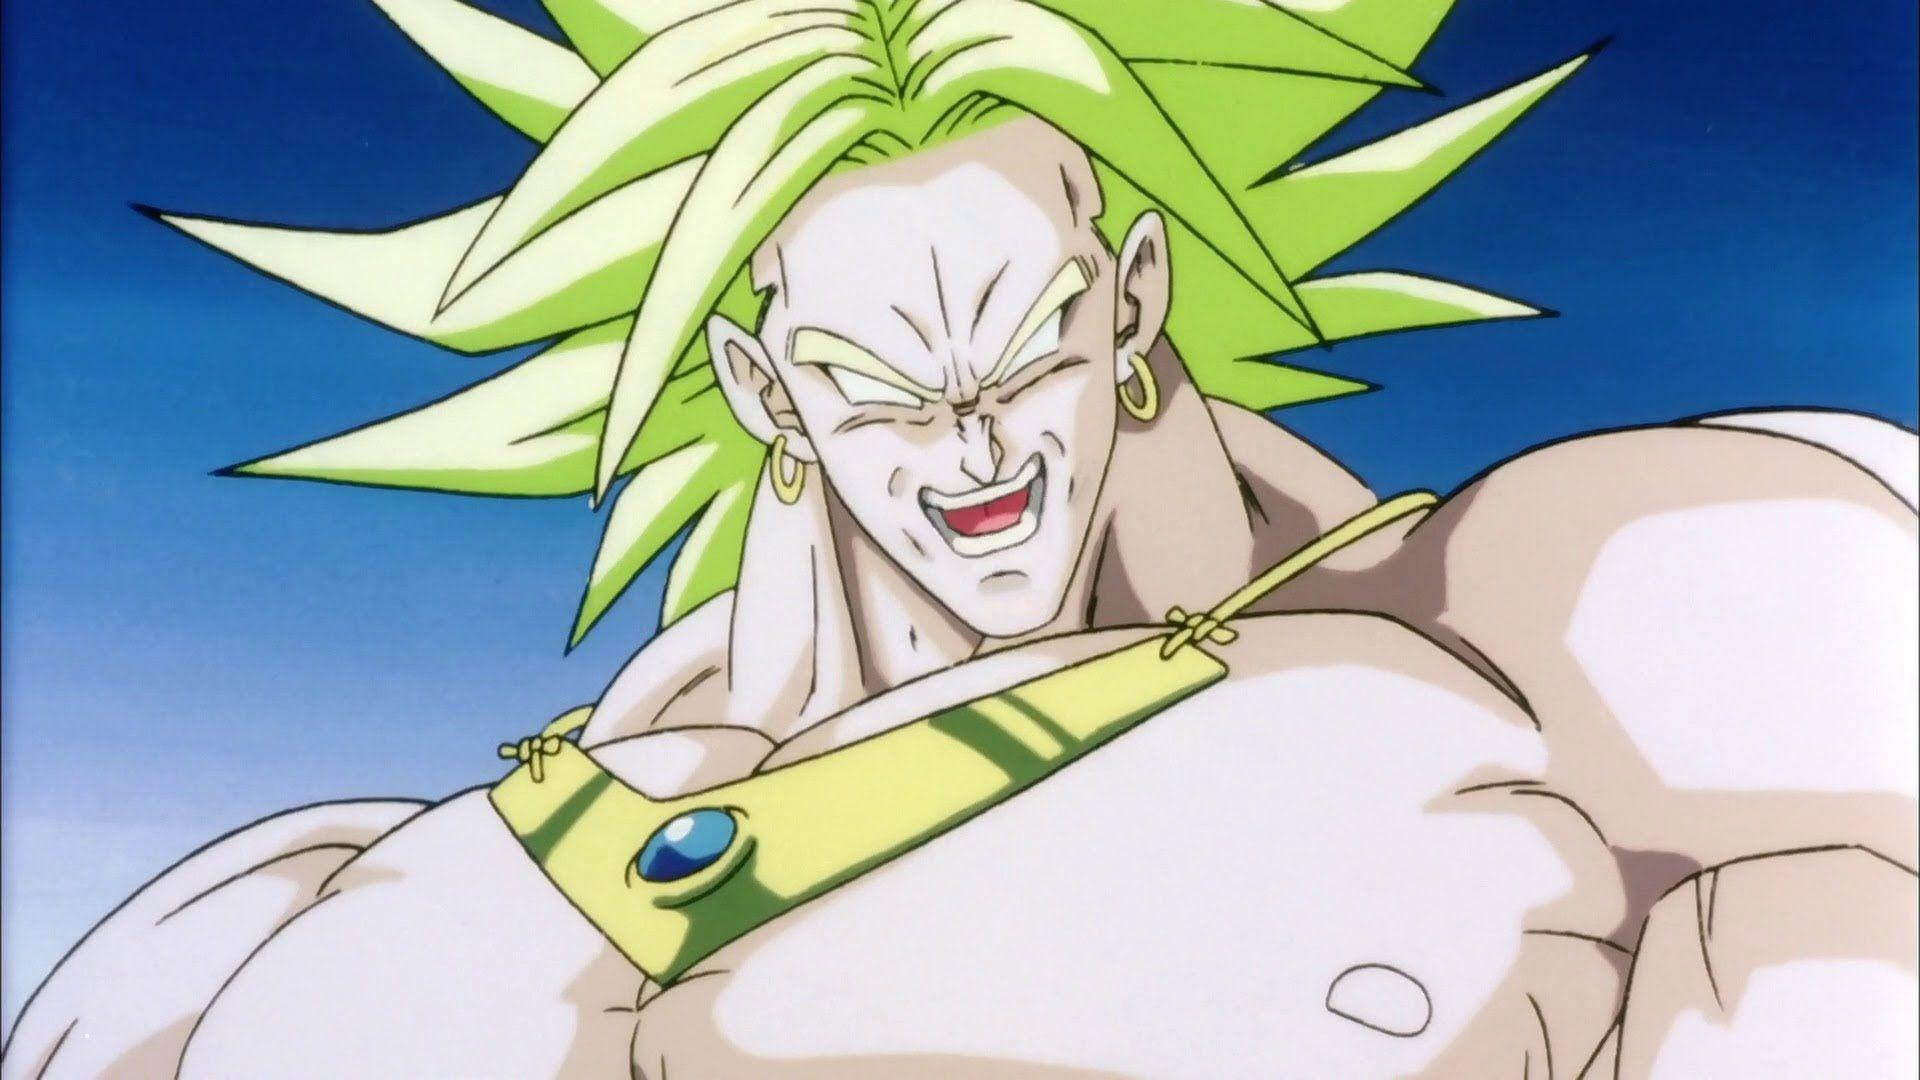 Upcoming DRAGON BALL SUPER Film To Feature Broly